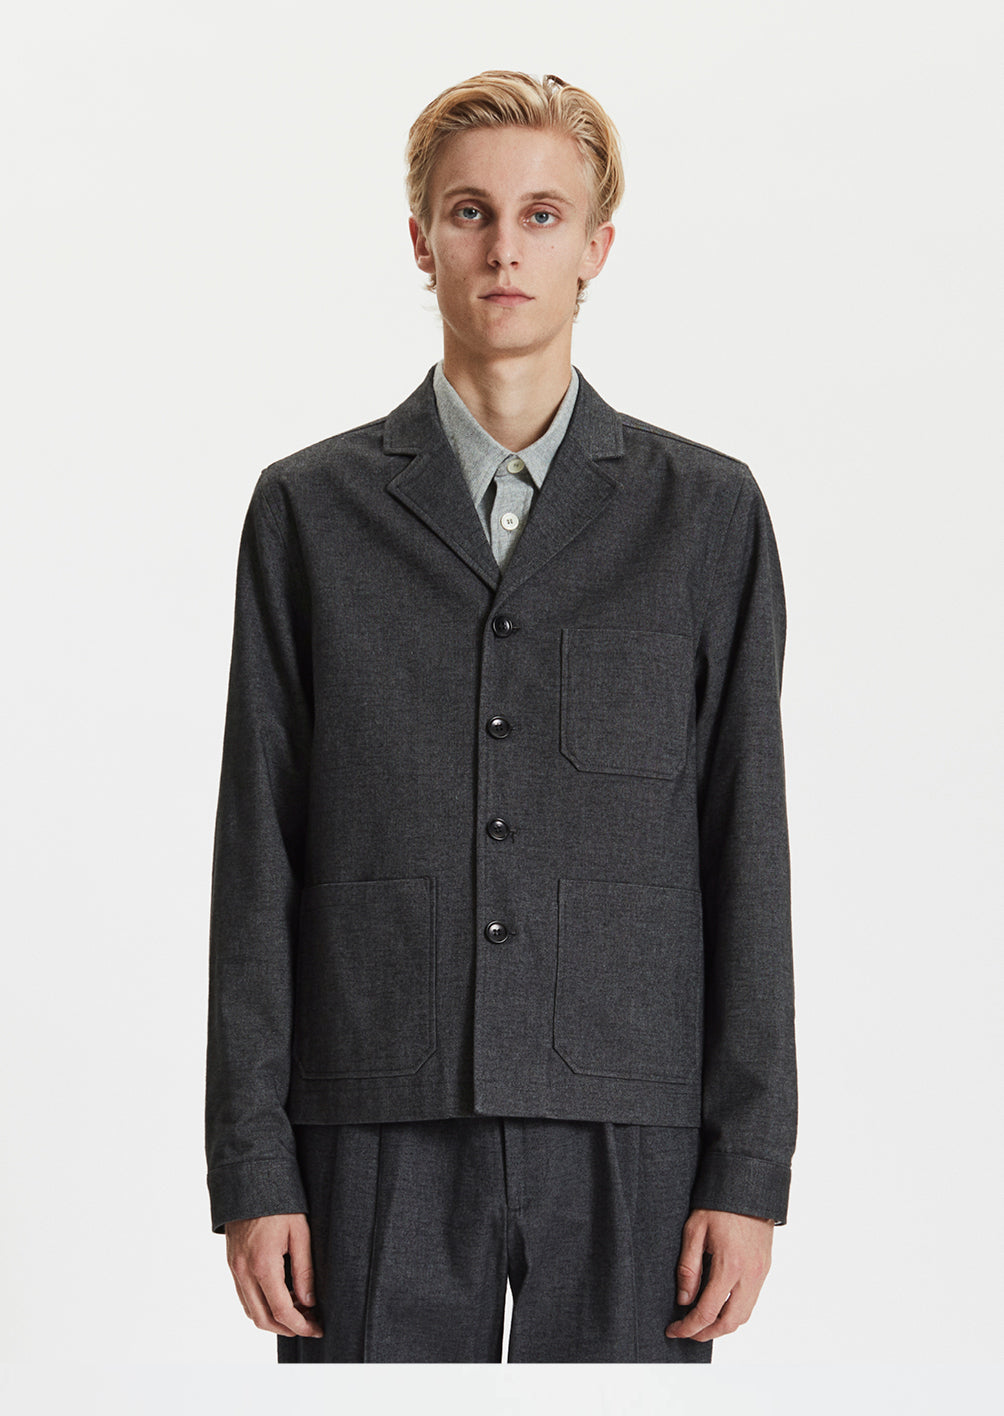 WORK JACKET - GREY